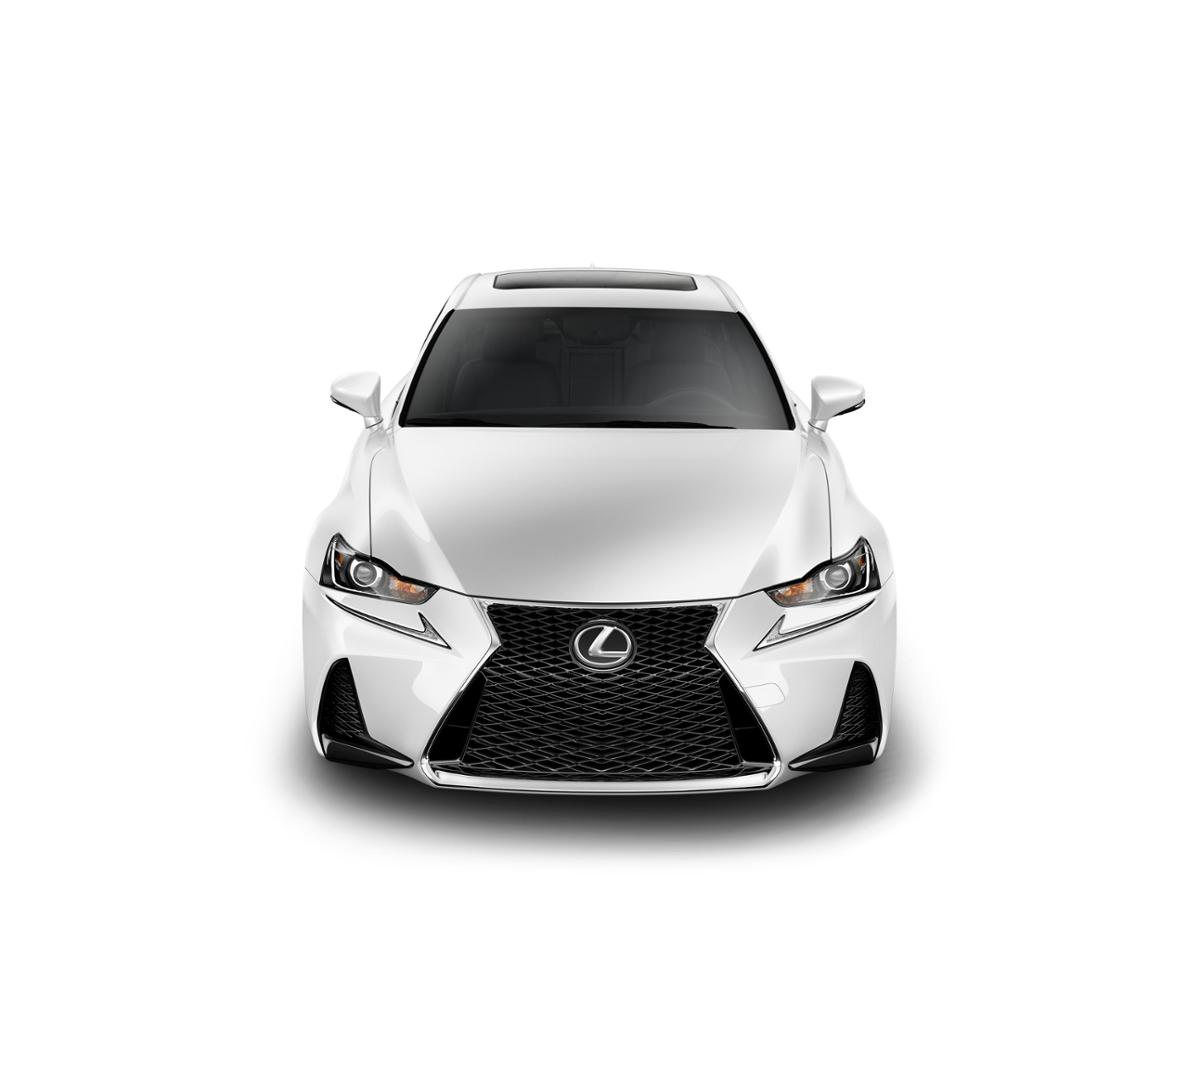 Towson Ultra White 2017 Lexus IS 300: Certified Car For